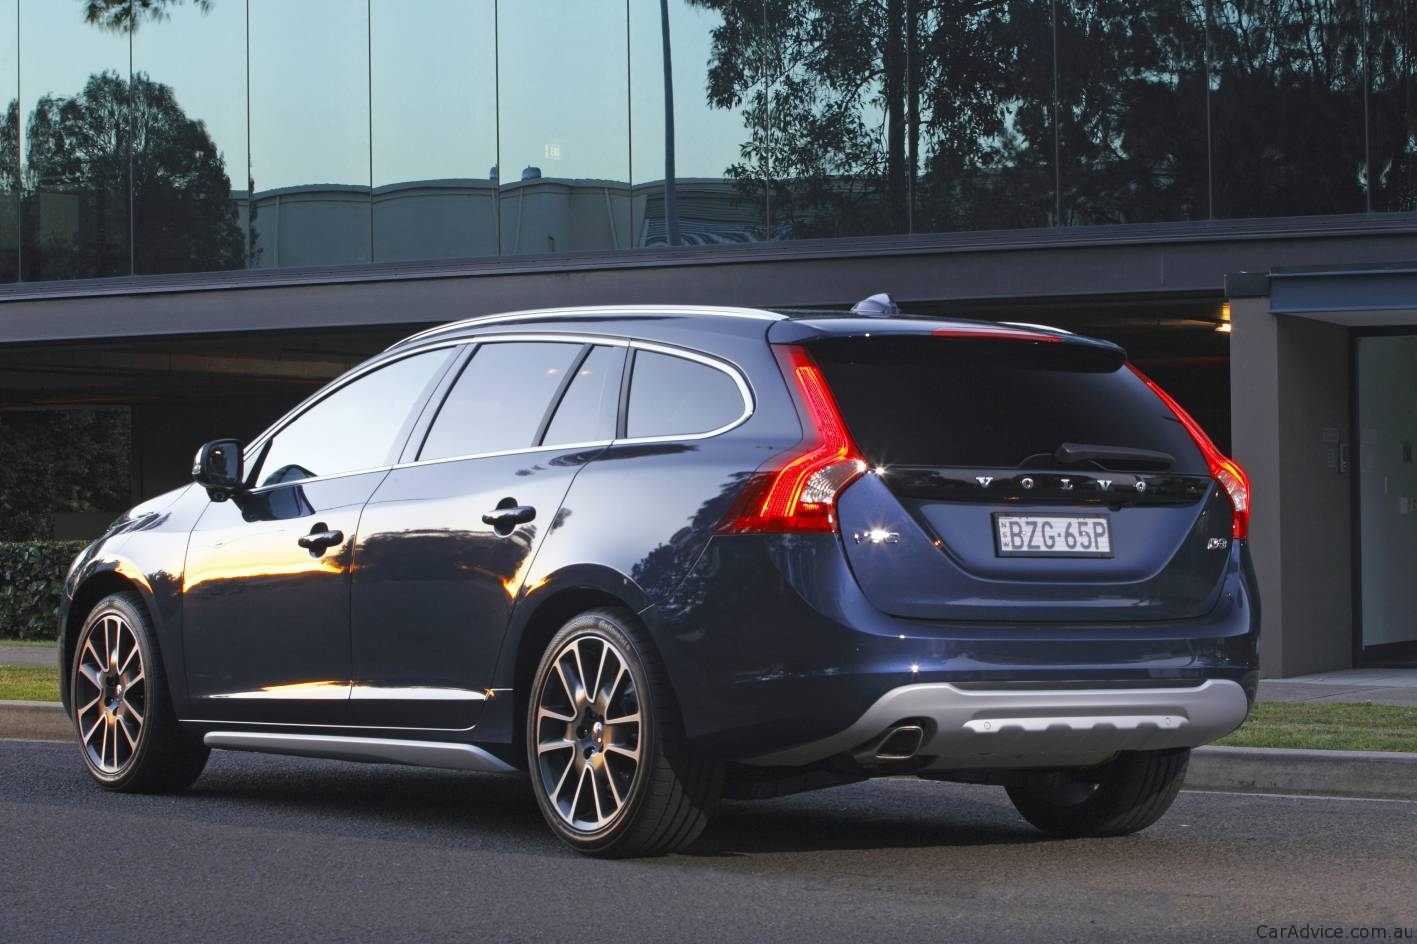 2012 Volvo S60, V60 upgraded: New petrol and diesel engines - photos | CarAdvice